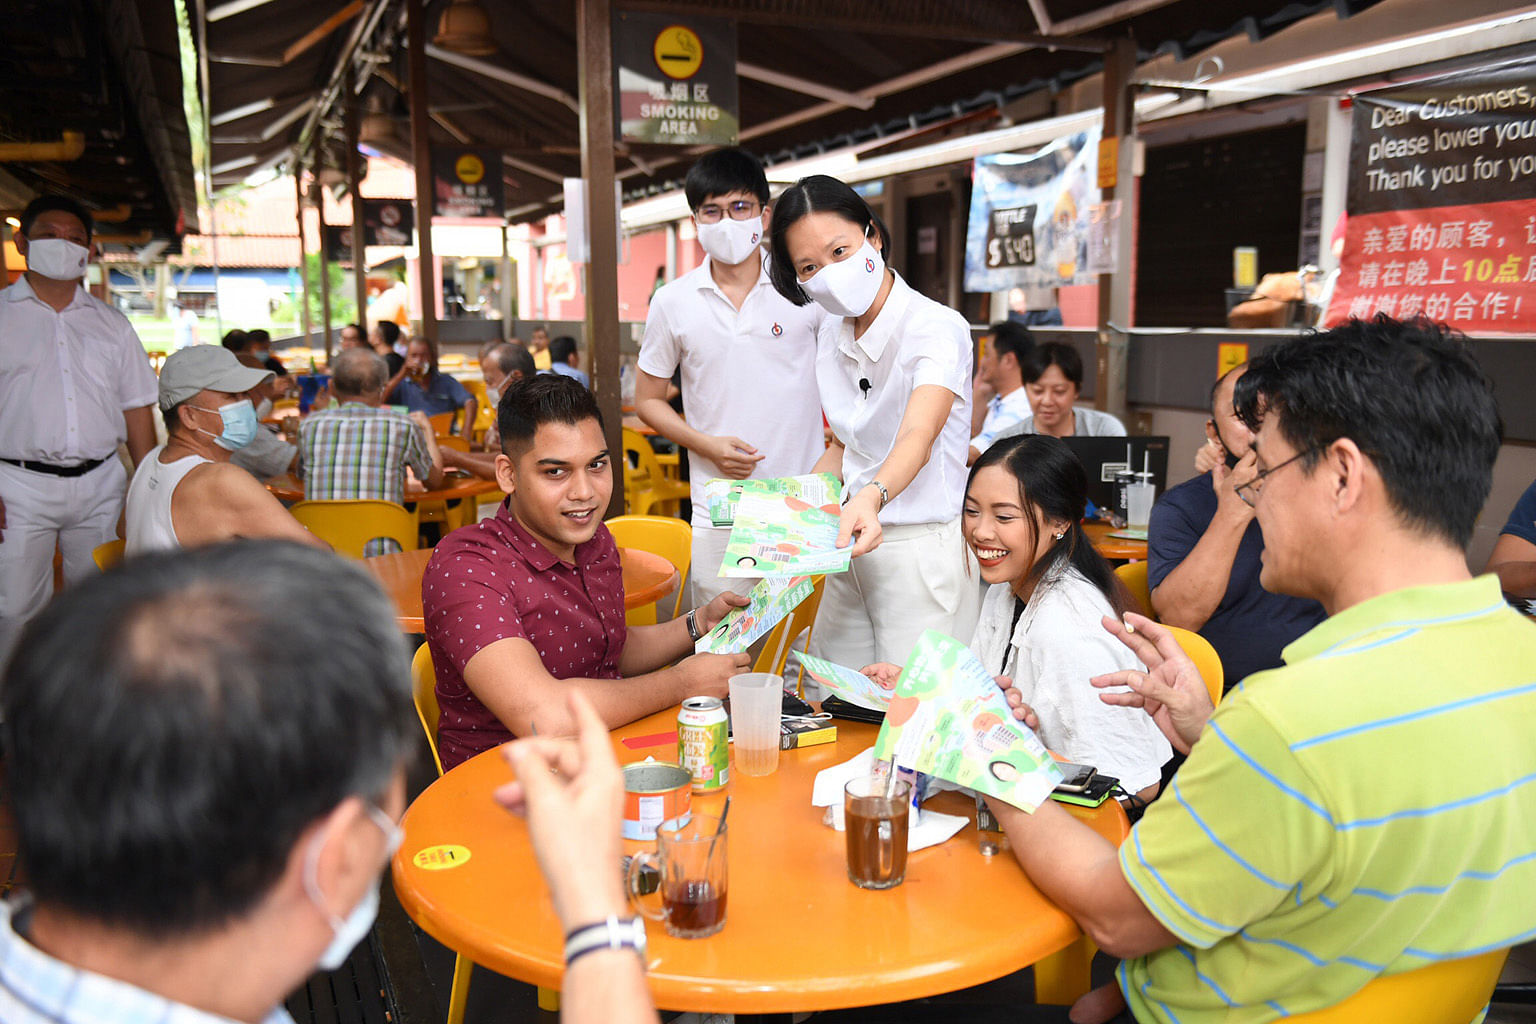 Ms Gan Siow Huang reaching out to residents at a coffee shop in Bishan Street 24 last week. She has been touted as among those slated for higher political office, if elected.